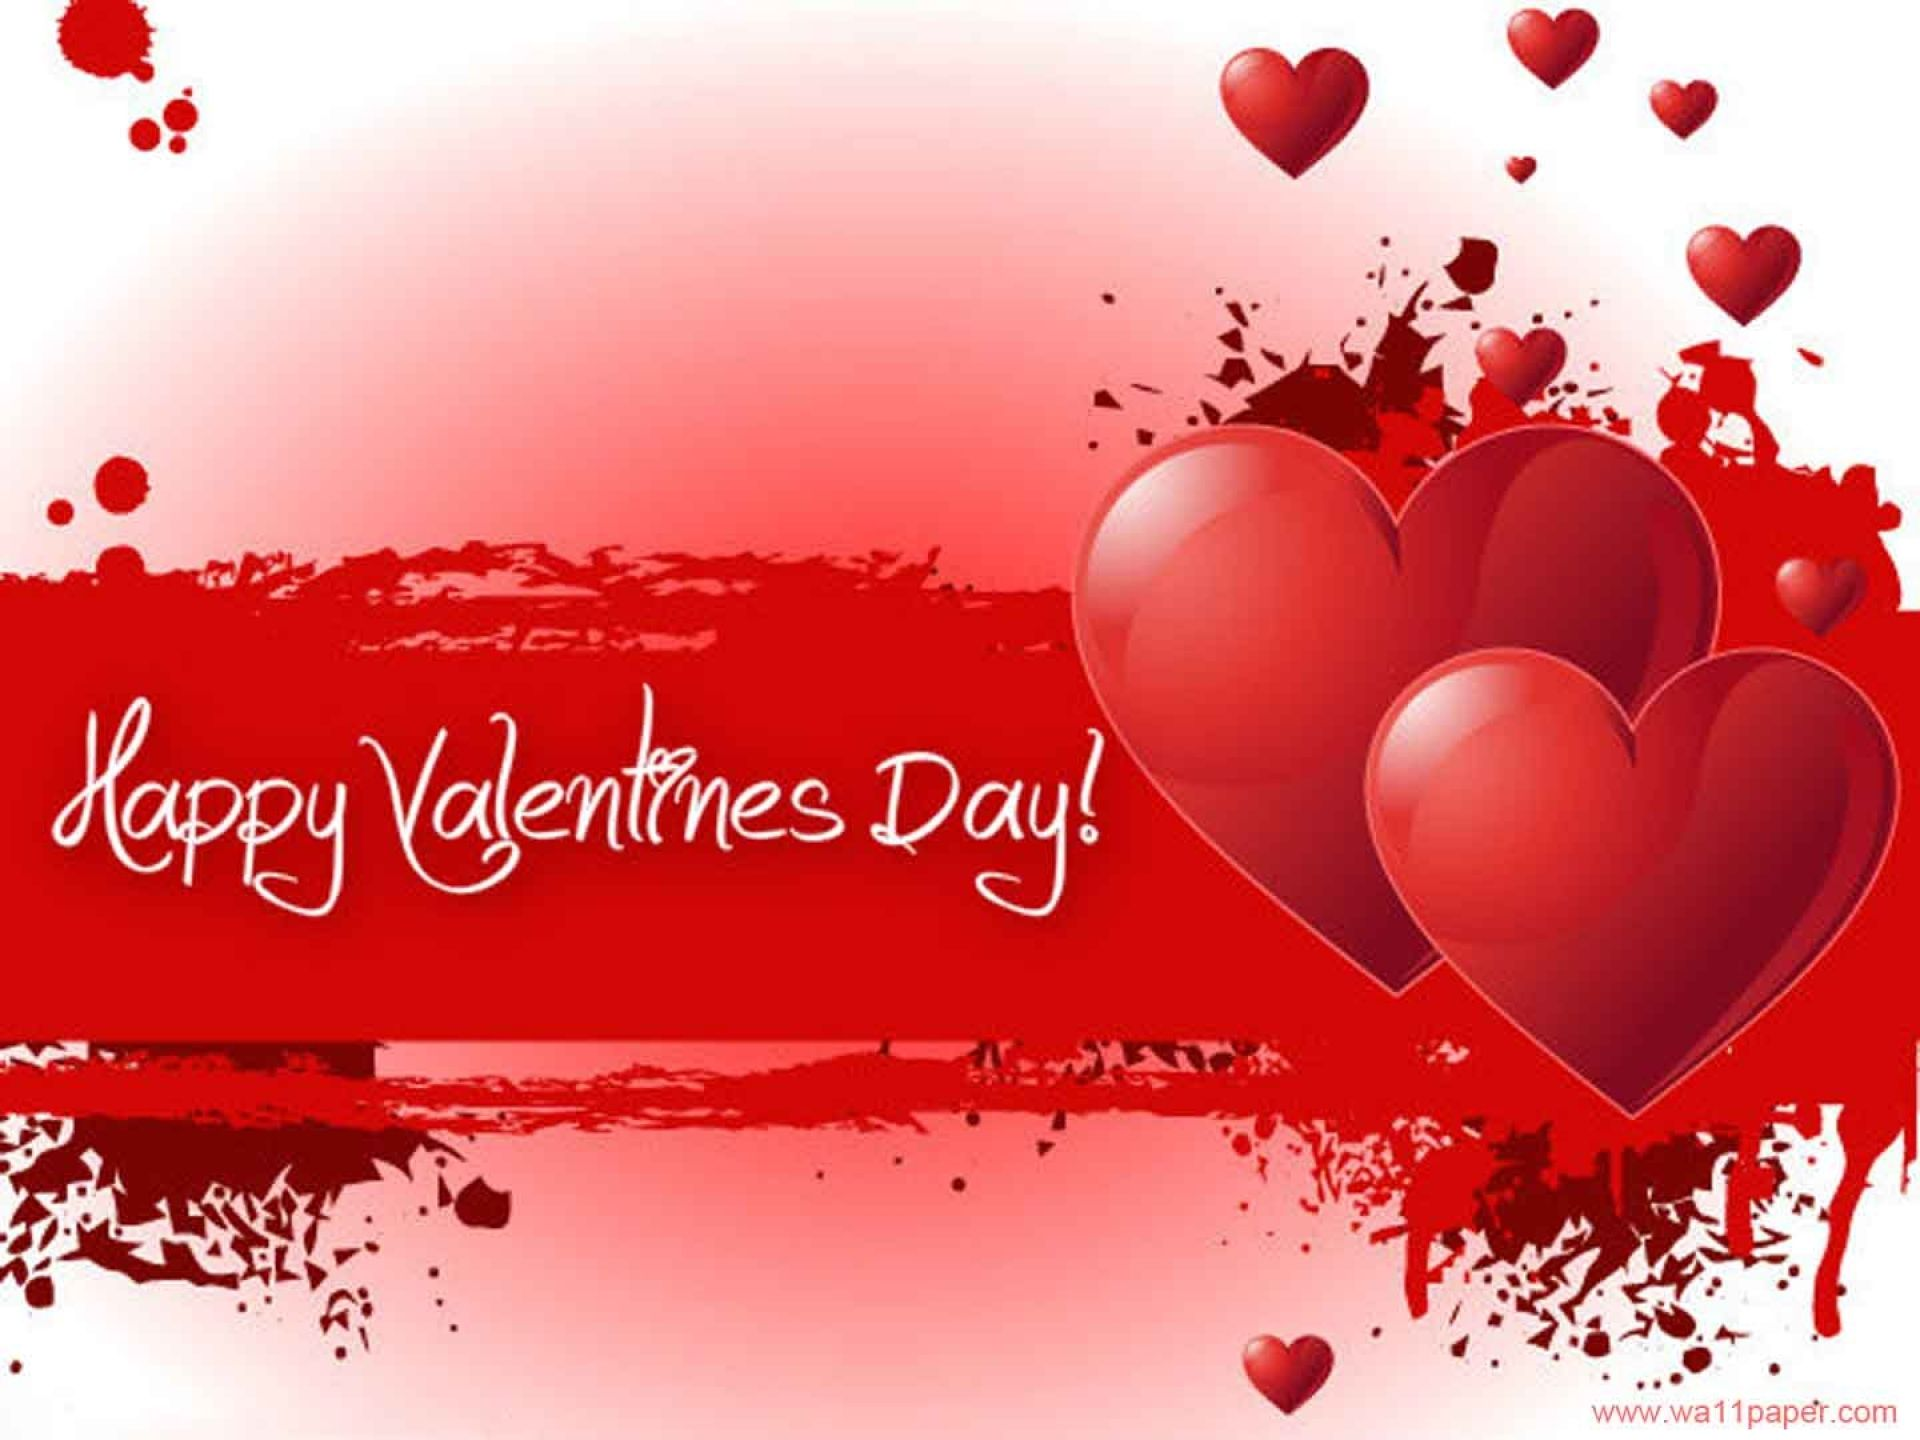 Valentines Day Card Images Love Pinterest